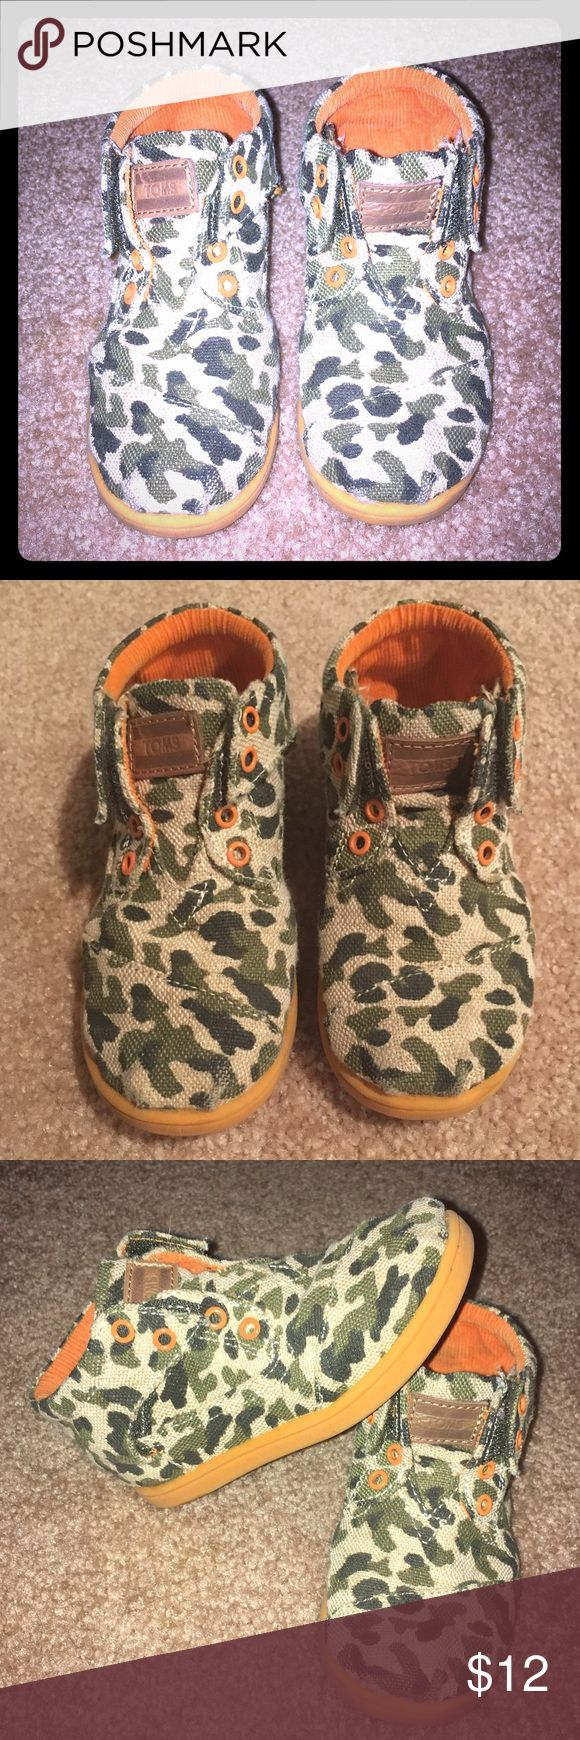 """Camo TOMS These will be adorable on your toddler! These are so cute and my son always got compliments on his """"cool boots"""" when he wore them. Easy Velcro on and off and great quality shoe. TOMS Shoes Boots"""